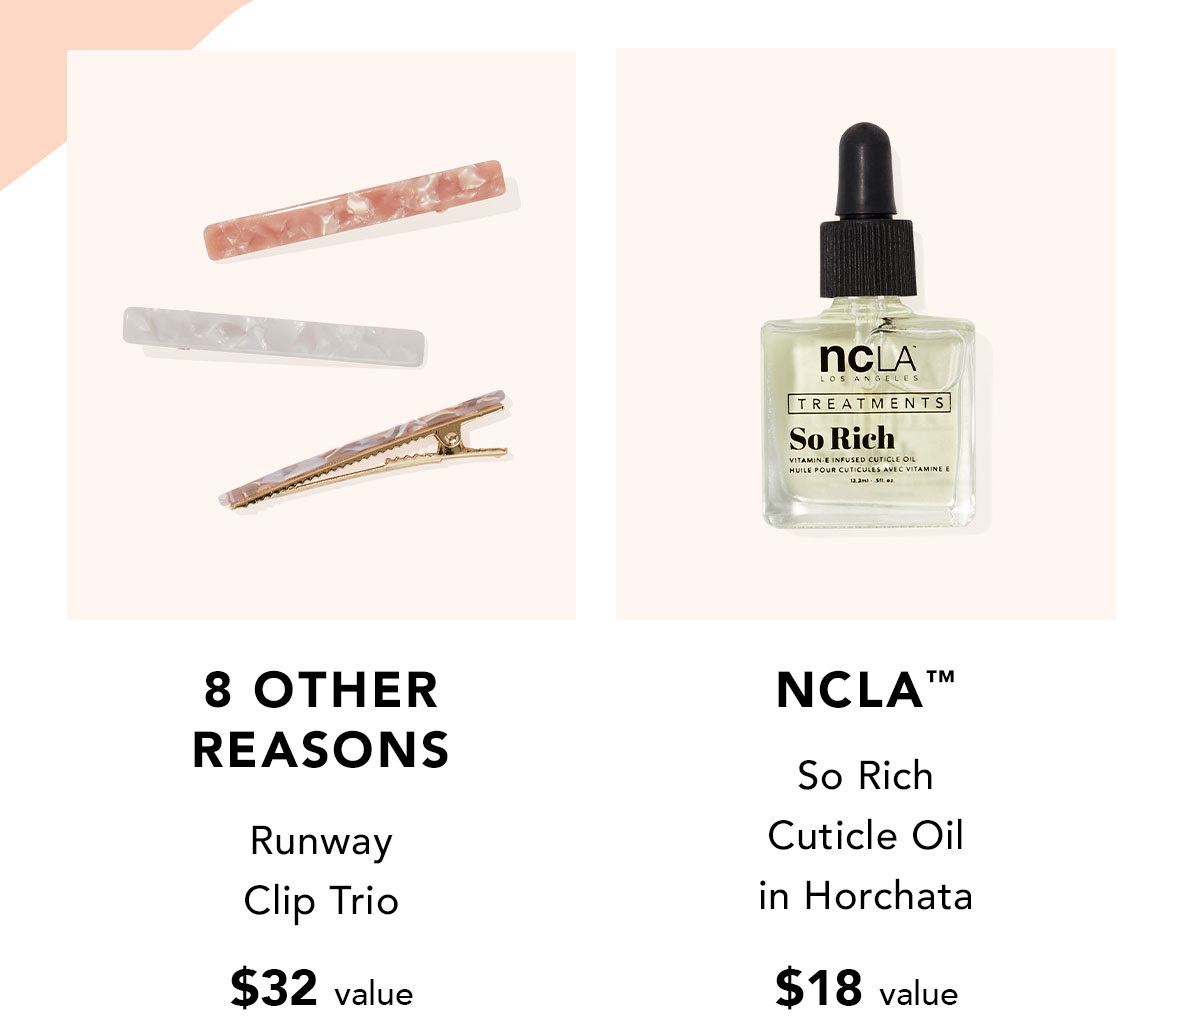 8 Other Reasons Runway Clip Trio $32 value | NCLA™ So Rich Cuticle Oil in Horchata $18 value